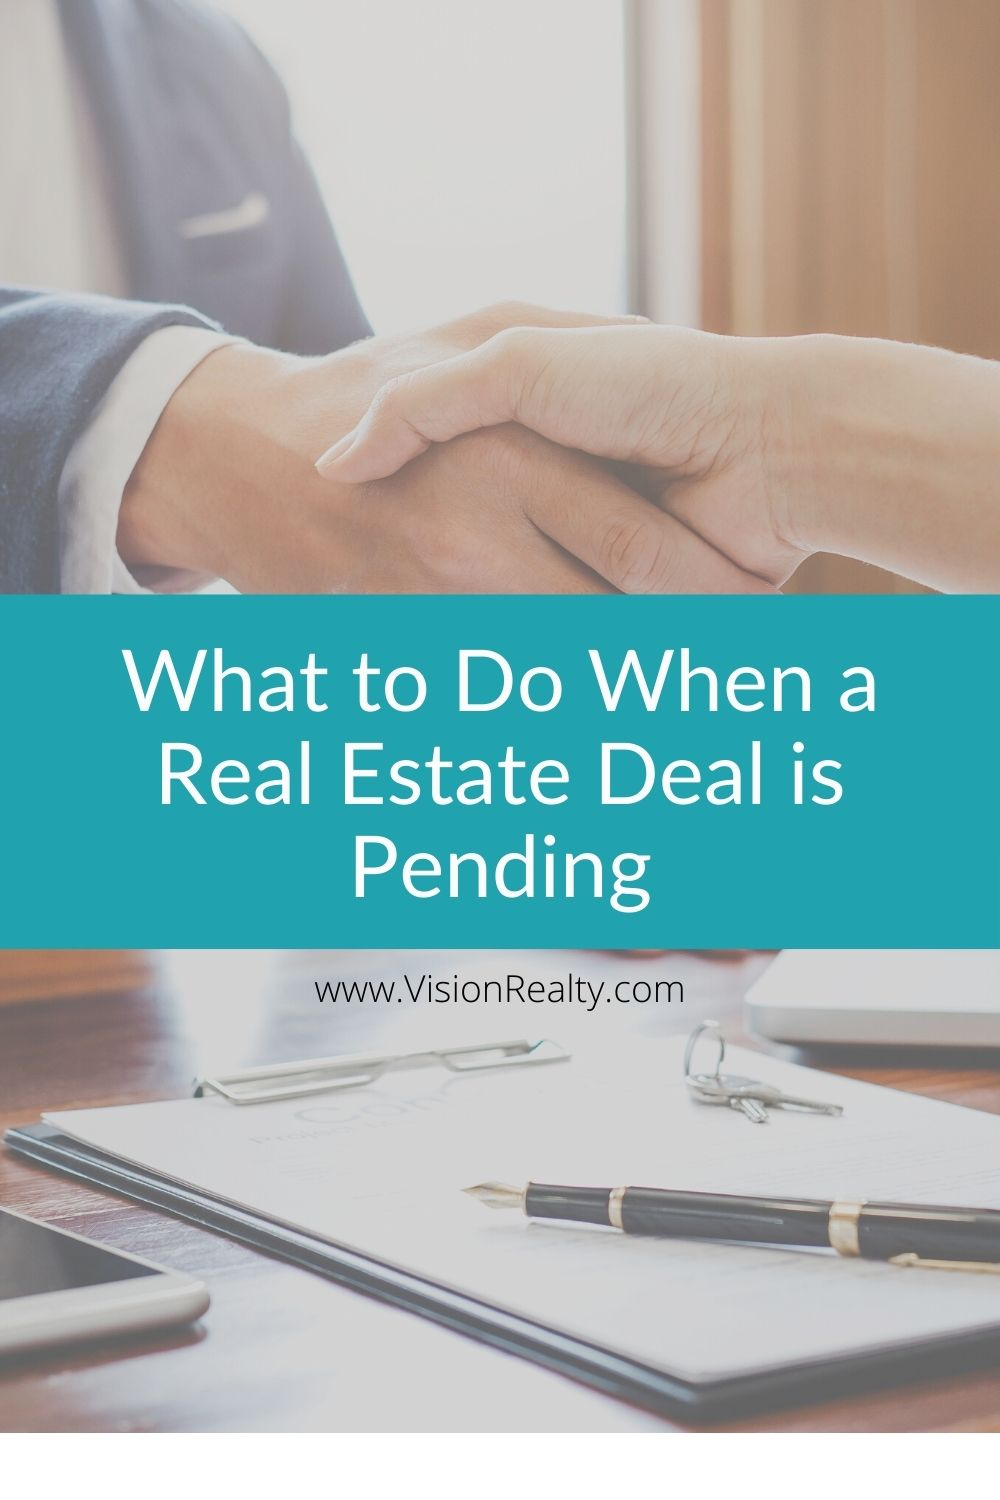 What to Do When a Real Estate Deal is Pending